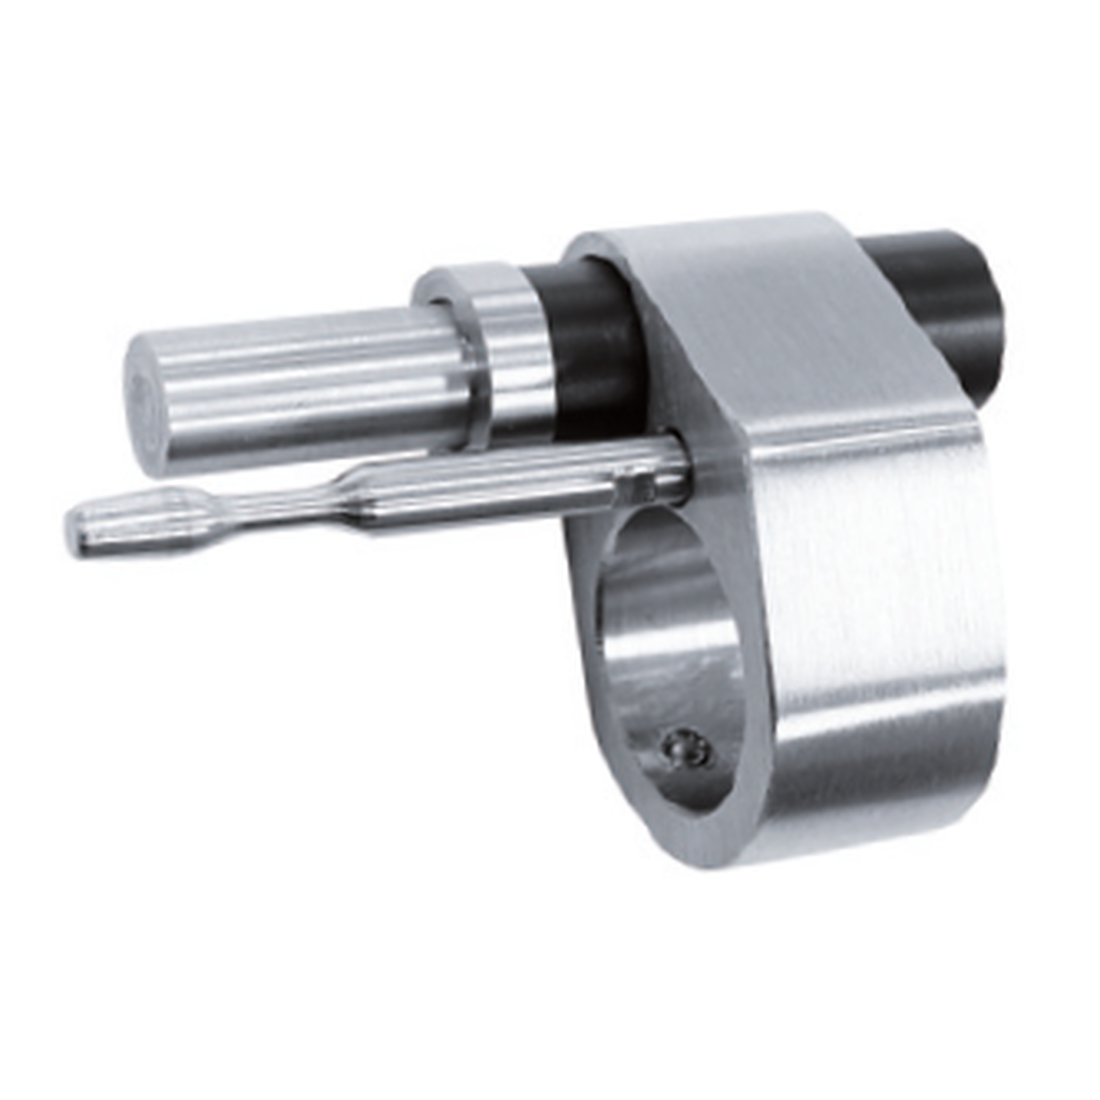 SOFTSTOP DAMPER FOR PROJECT, FLATEC VI AND FLATEC V, MAX DOOR WEIGHT 35-70KG